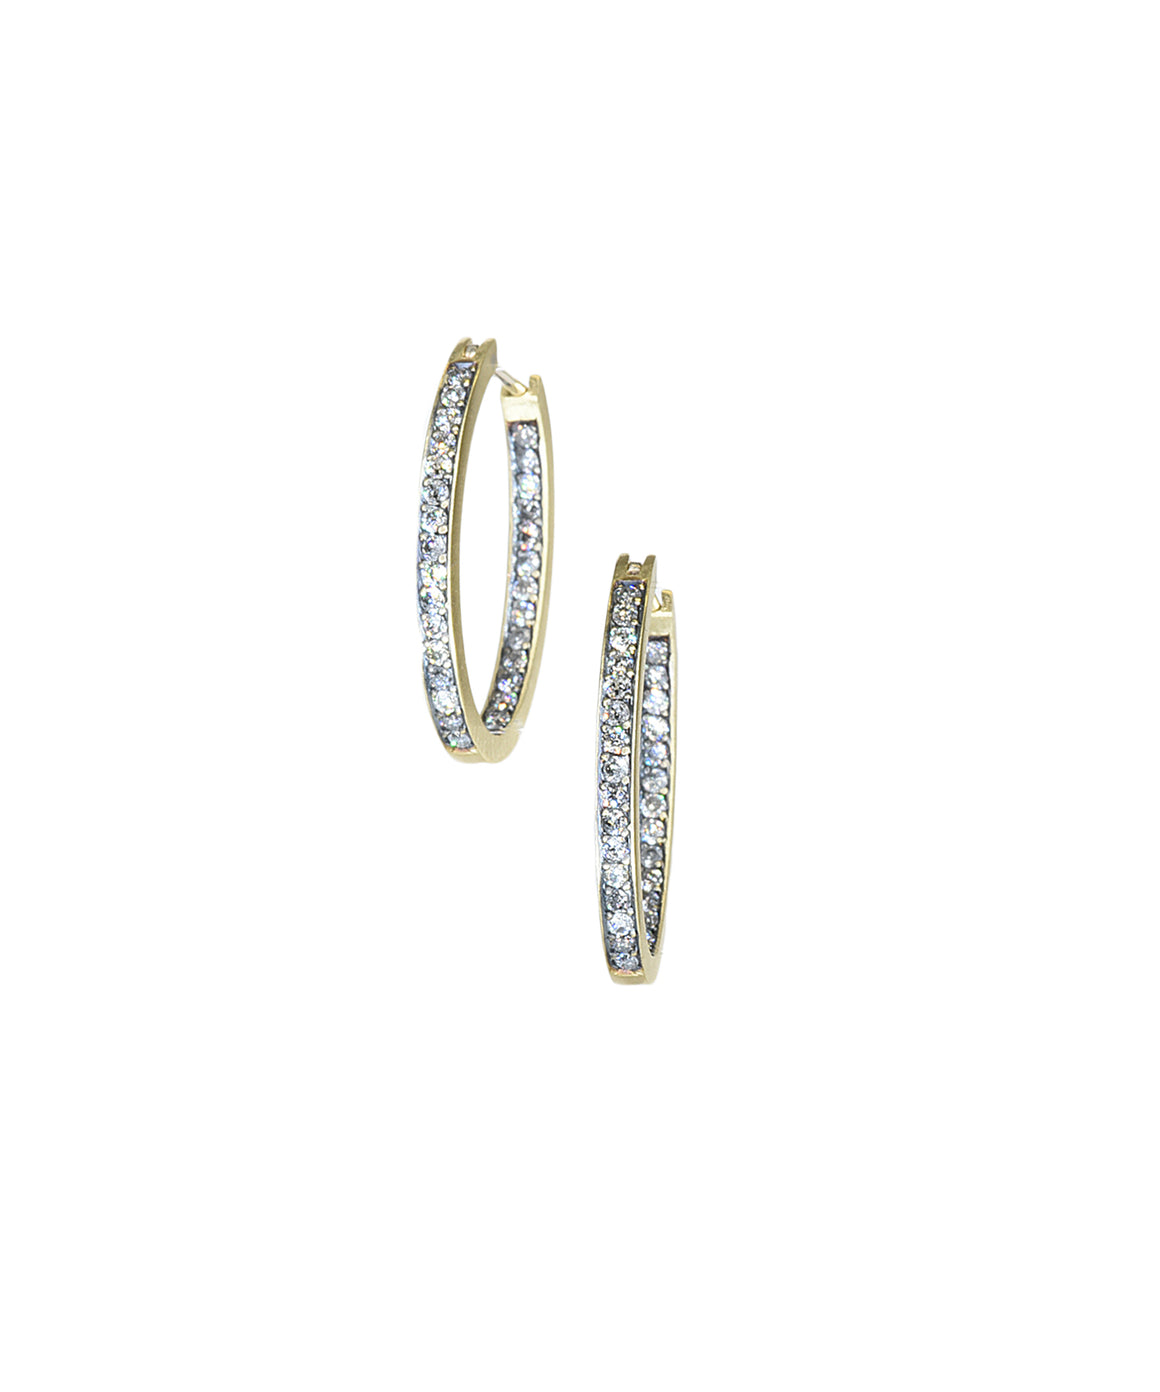 Grey diamond hoop earrings